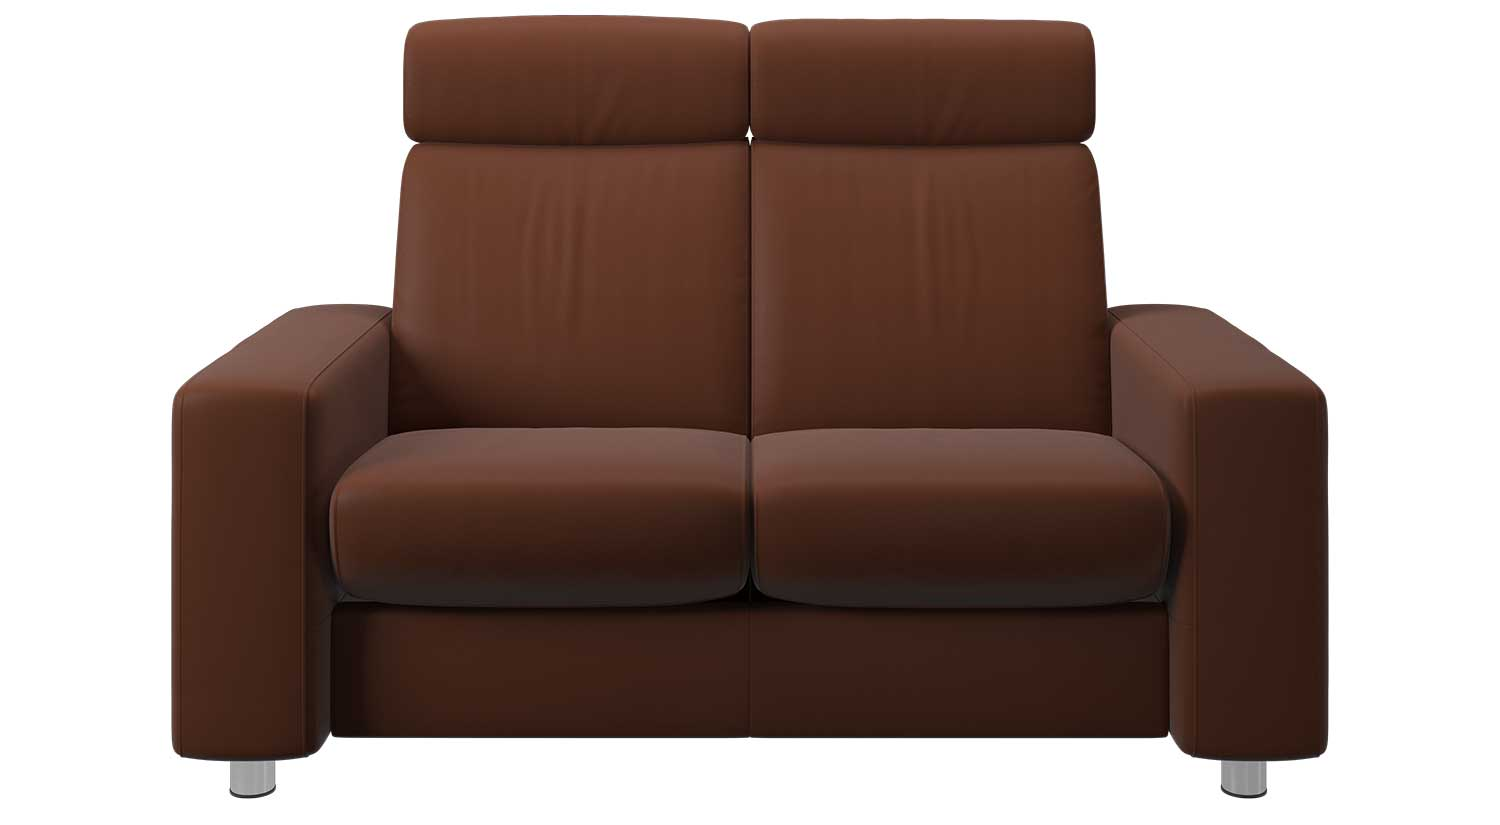 Arion20 Stressless Highback Loveseat